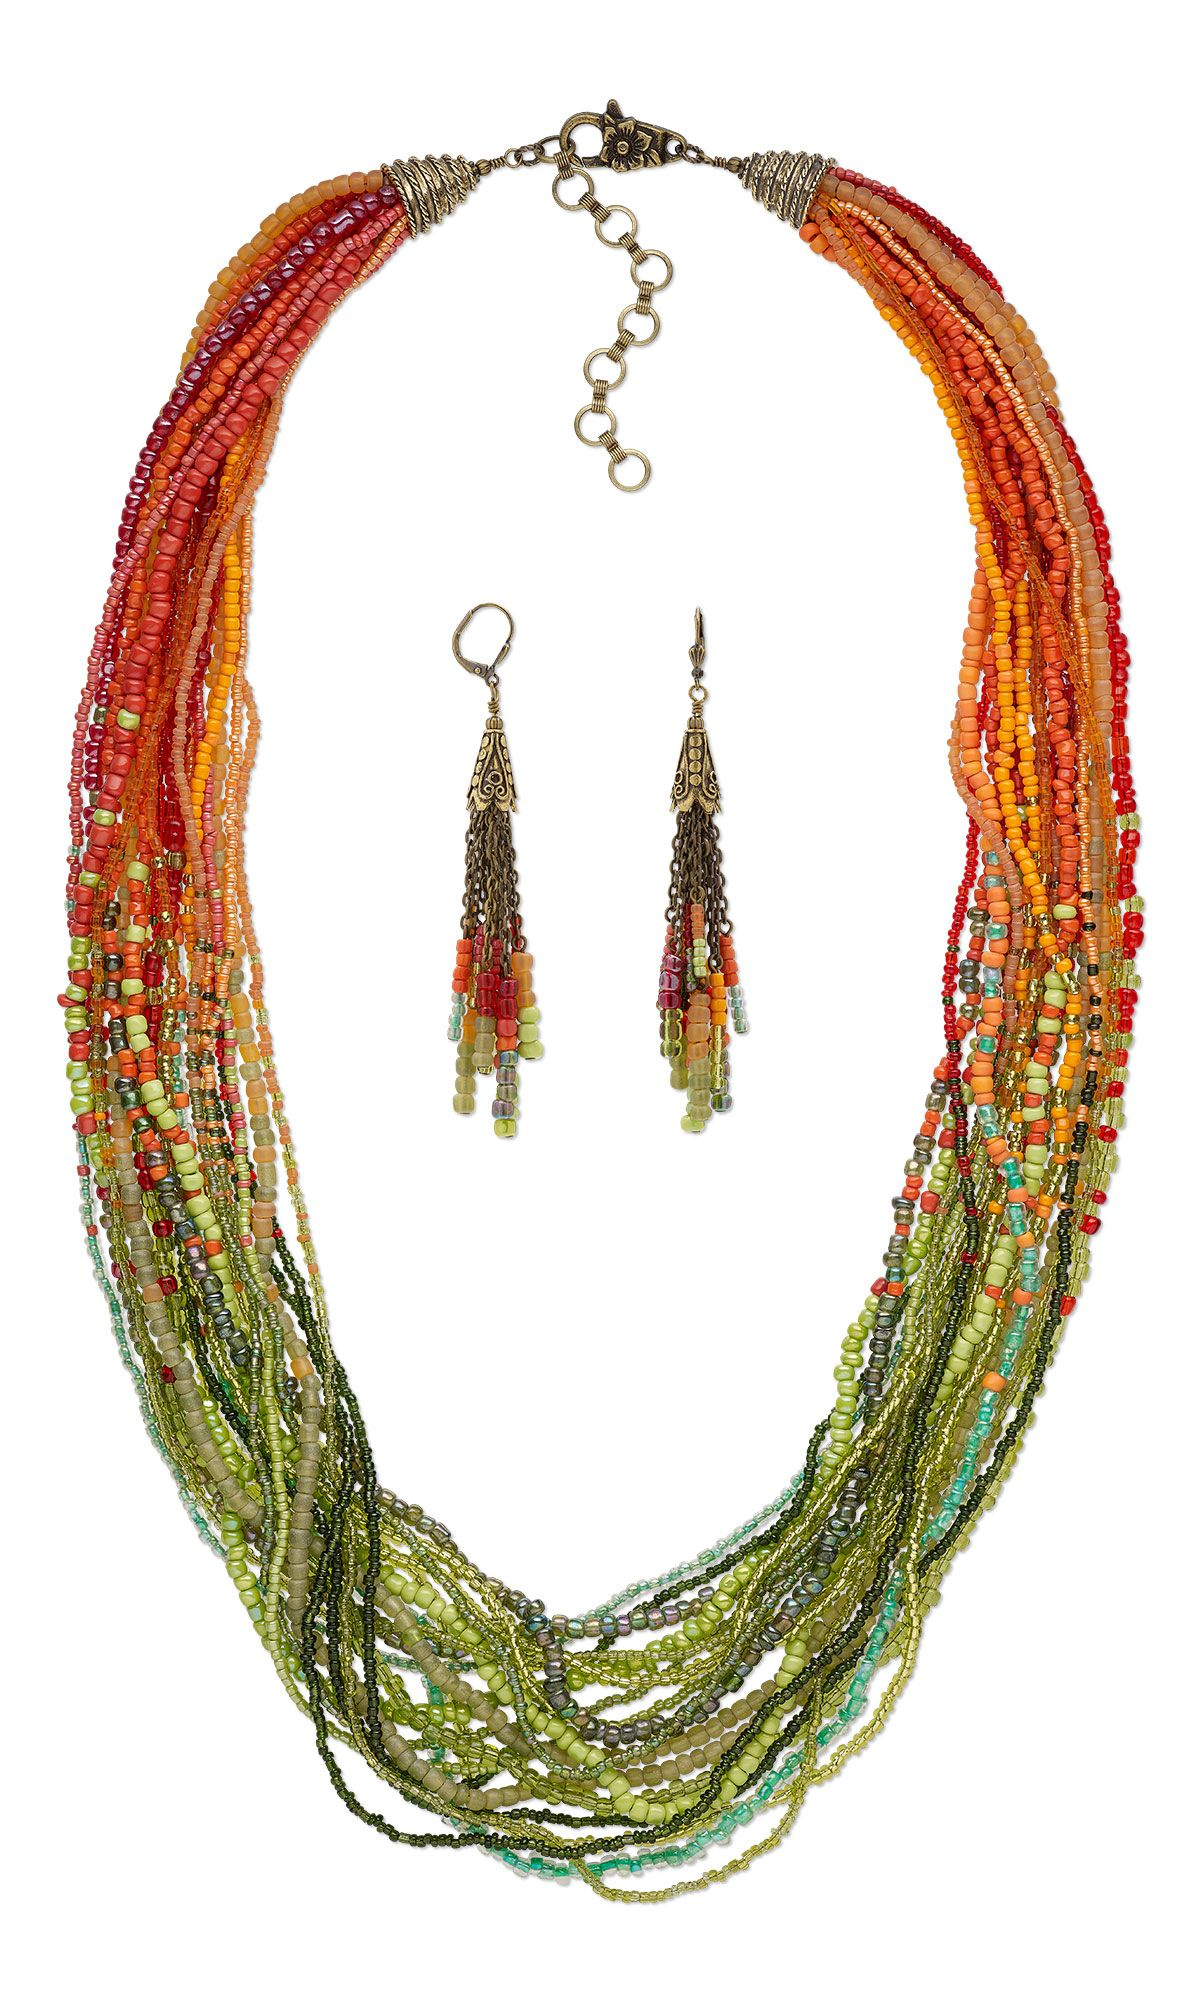 Jewelry Design - Multi-Strand Necklace and Earring Set with Seed ...